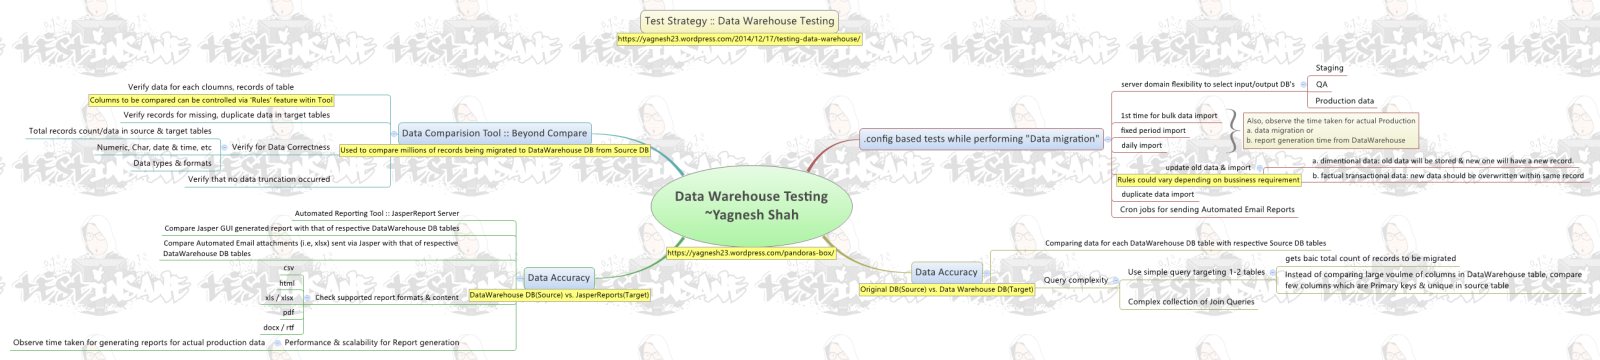 Data Warehouse Test Strategy